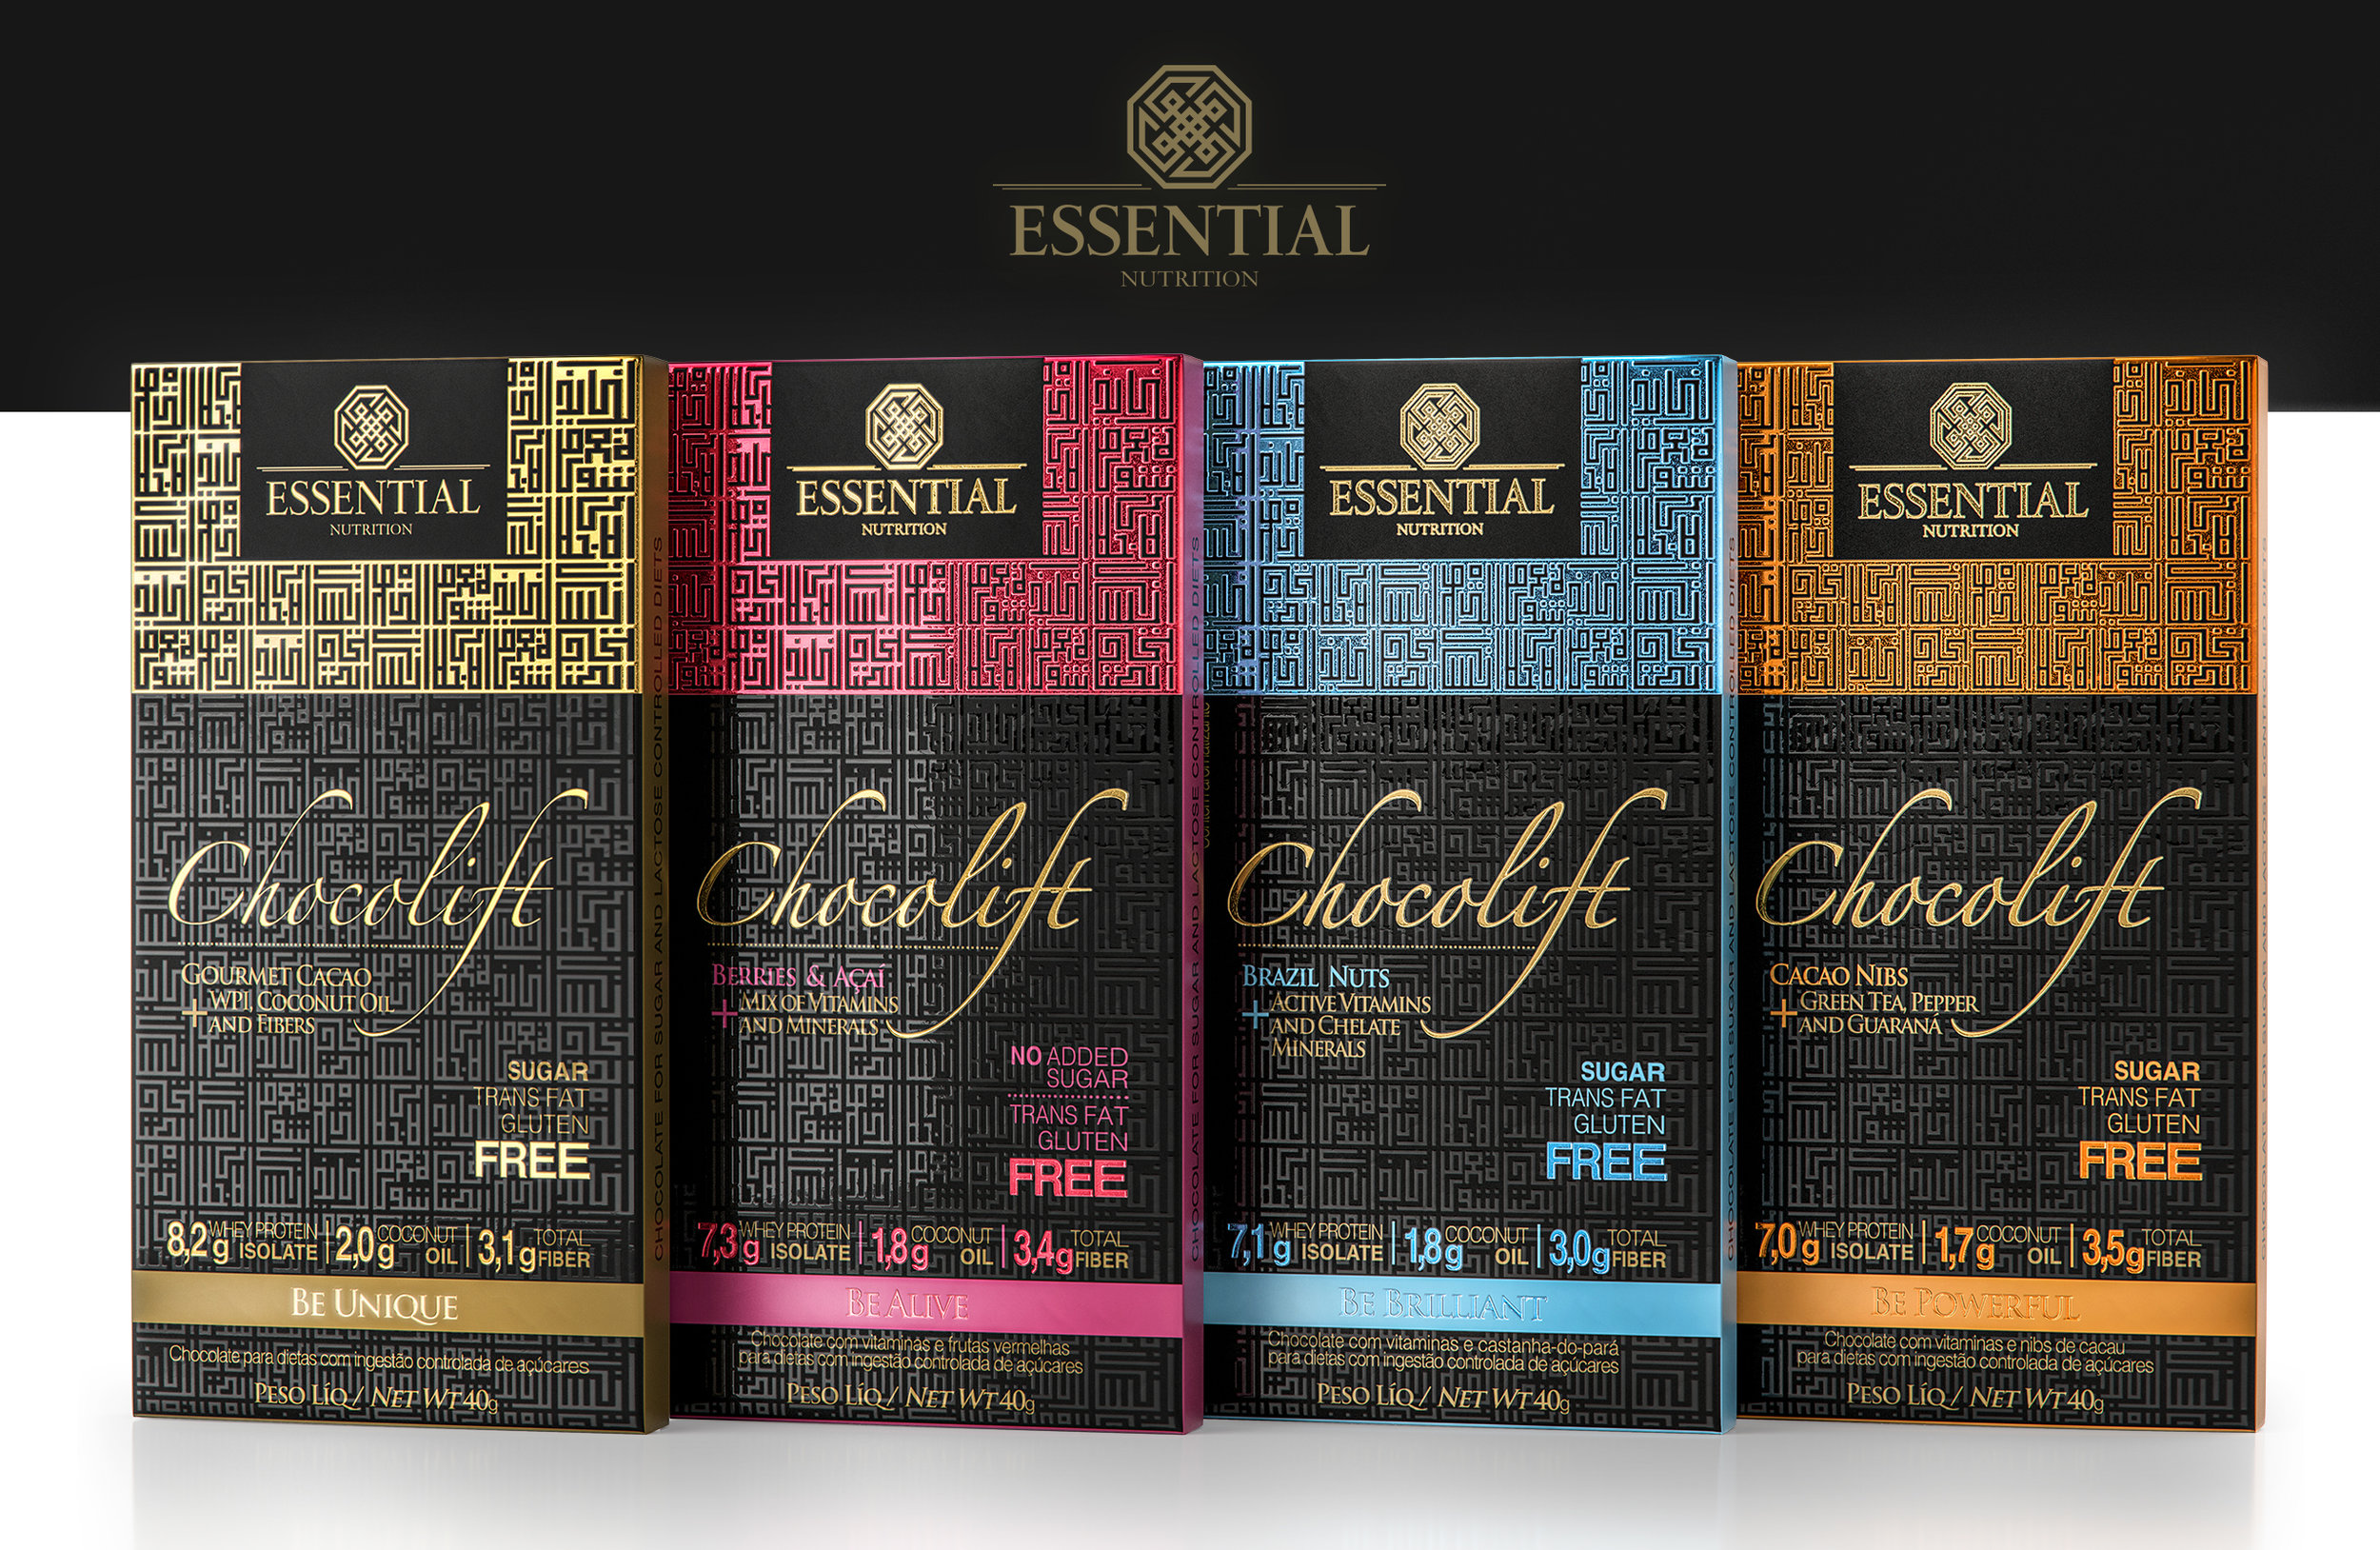 Creative Concept for Functional Nutritional Range of Products from Brazil